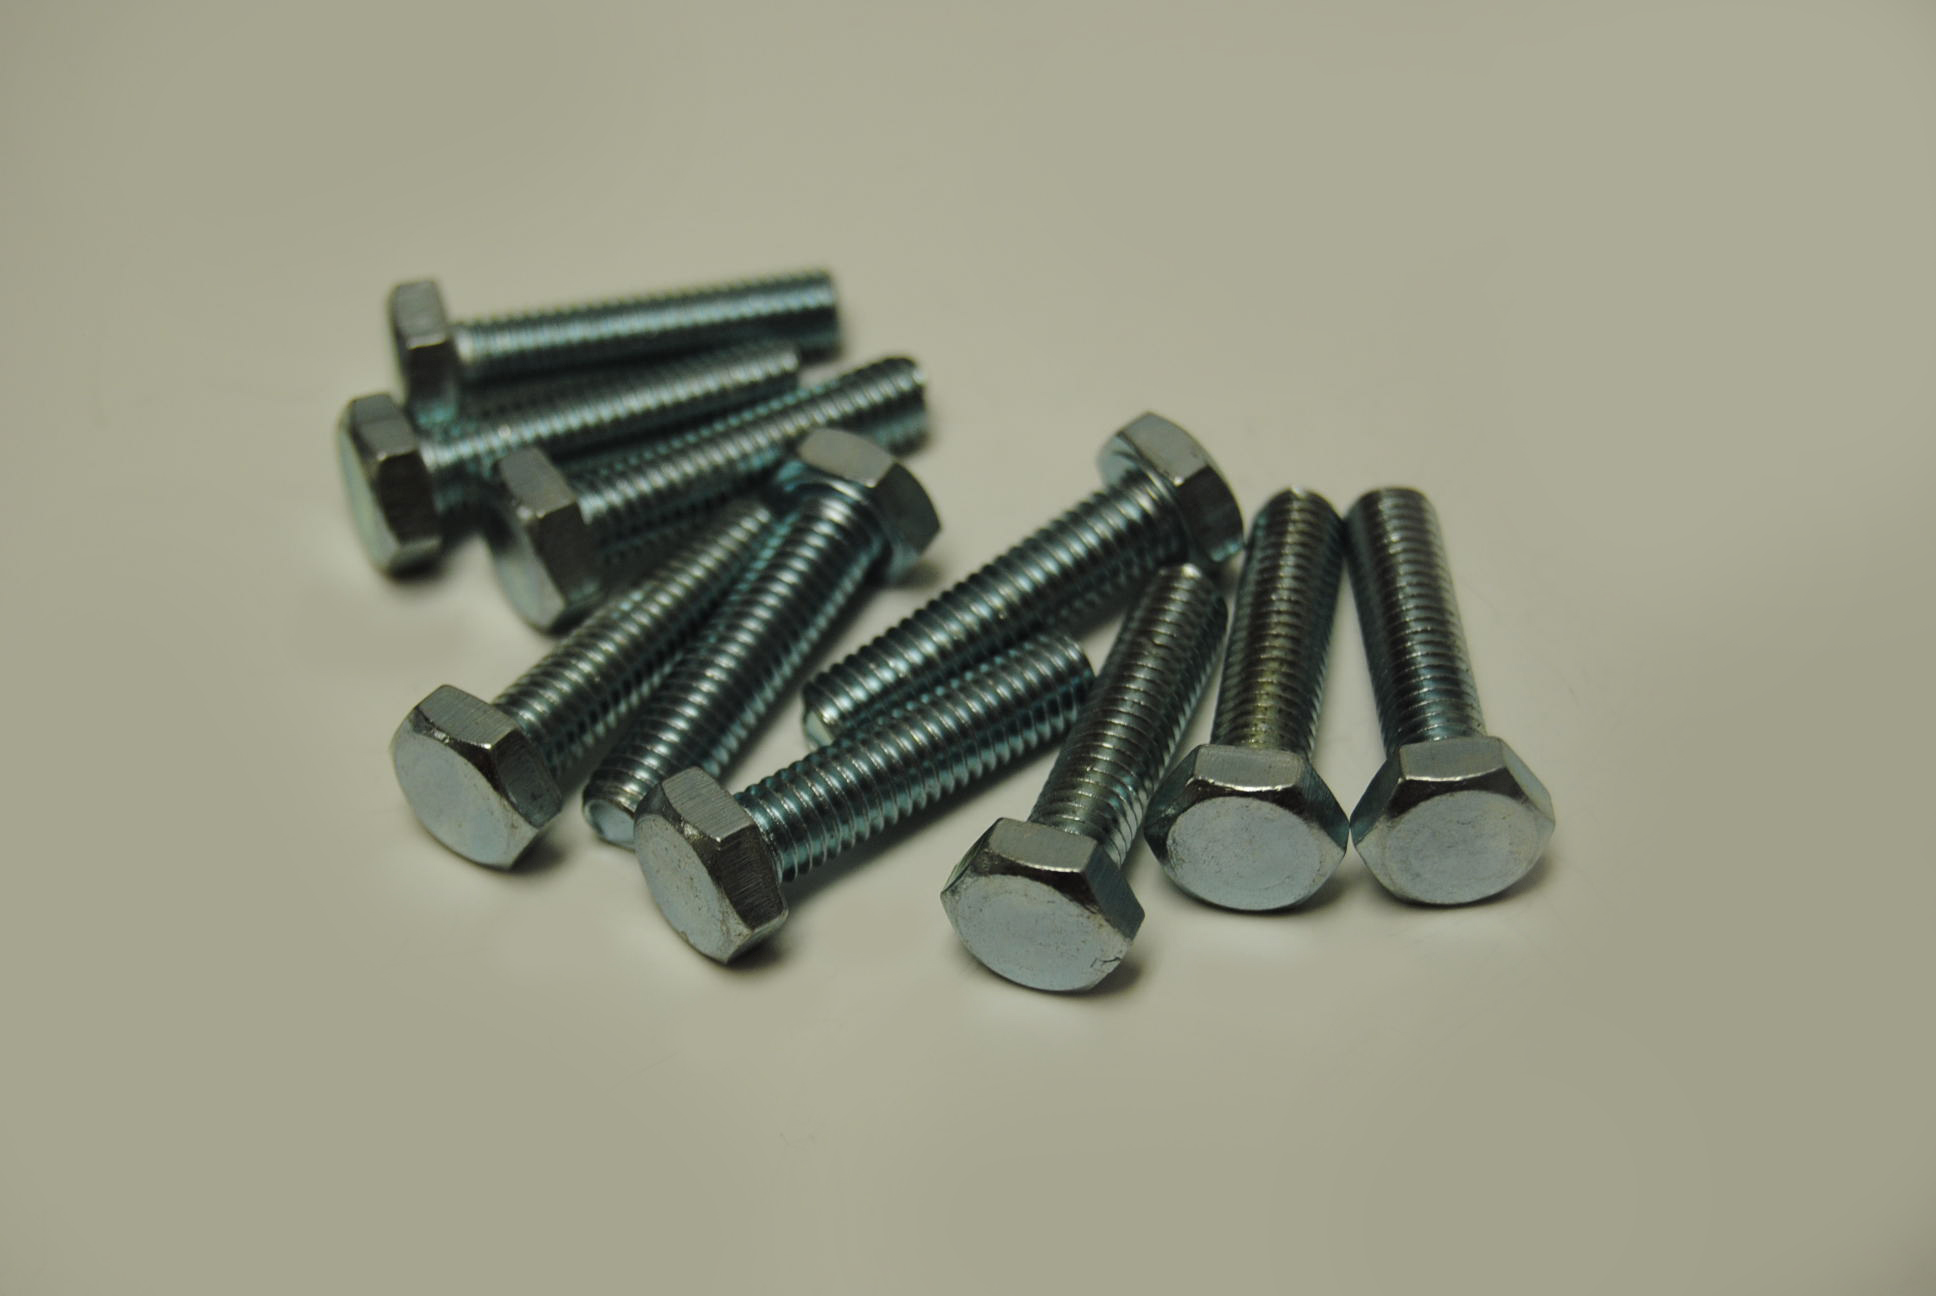 6mm x 25mm Hex Head Bolts - ISO